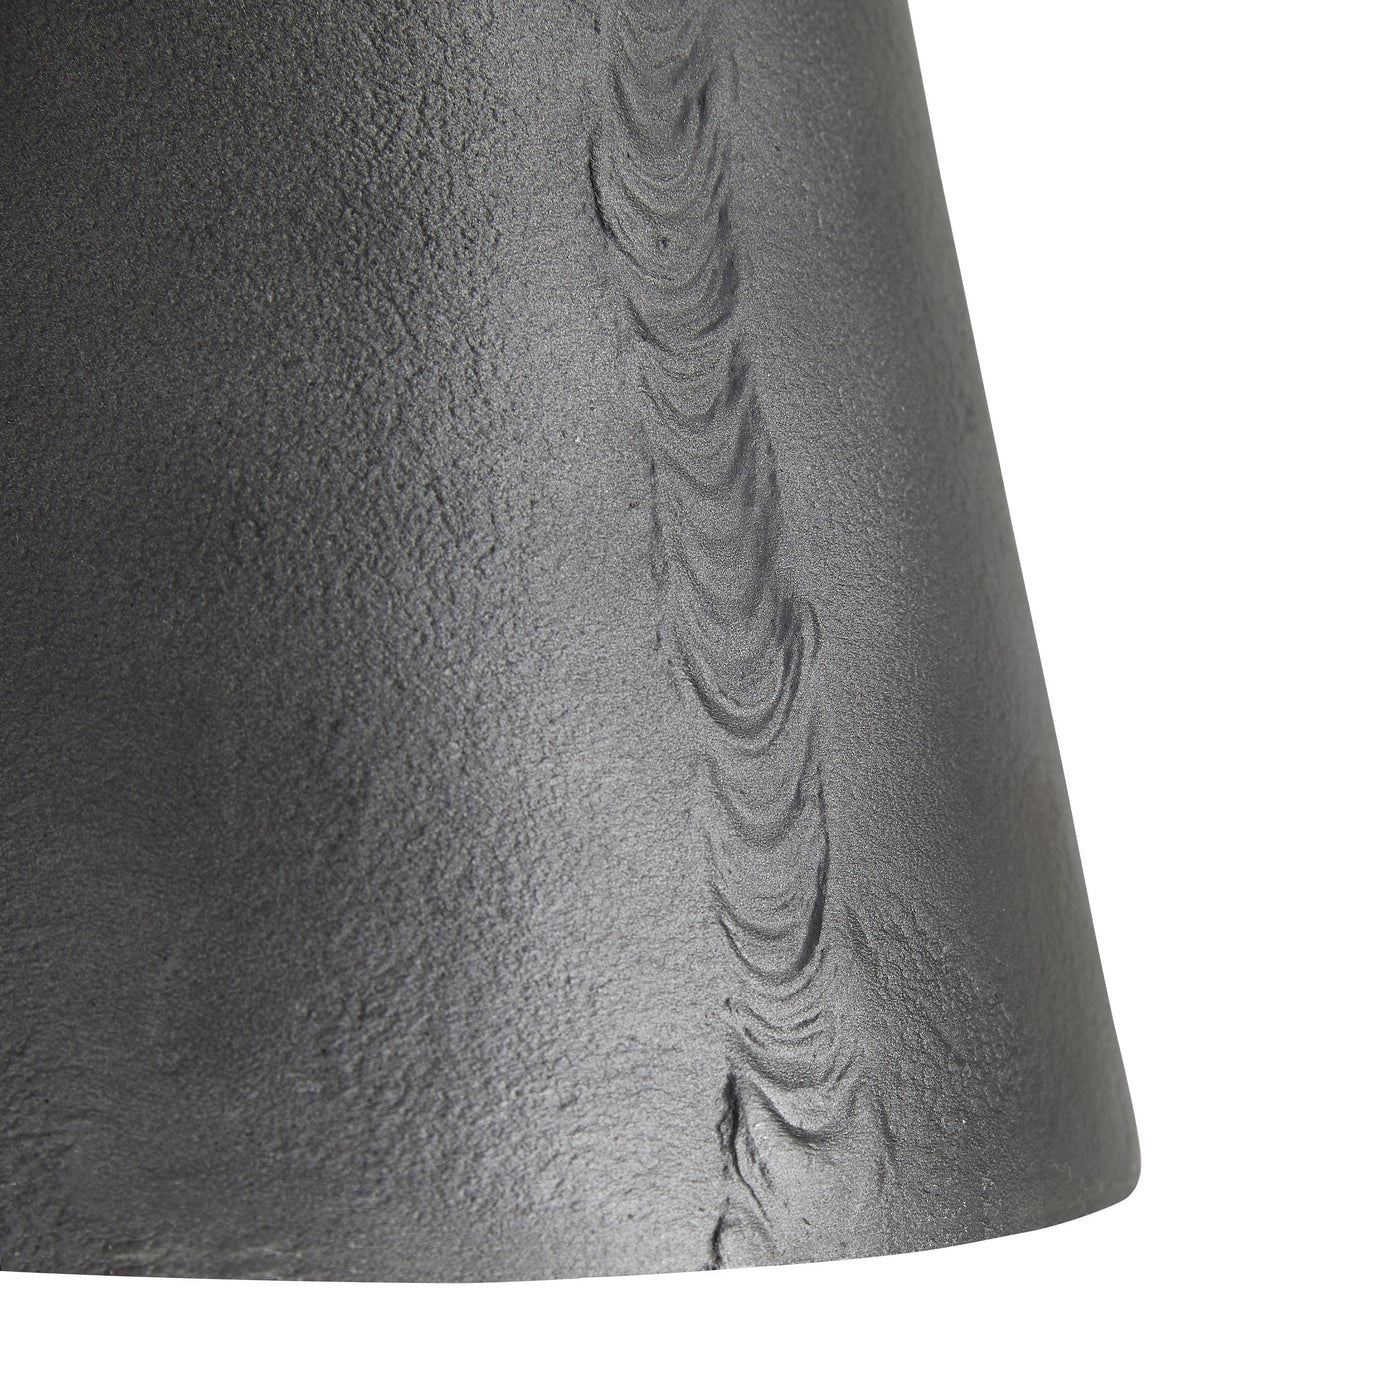 arteriors narsi table lamp base detail